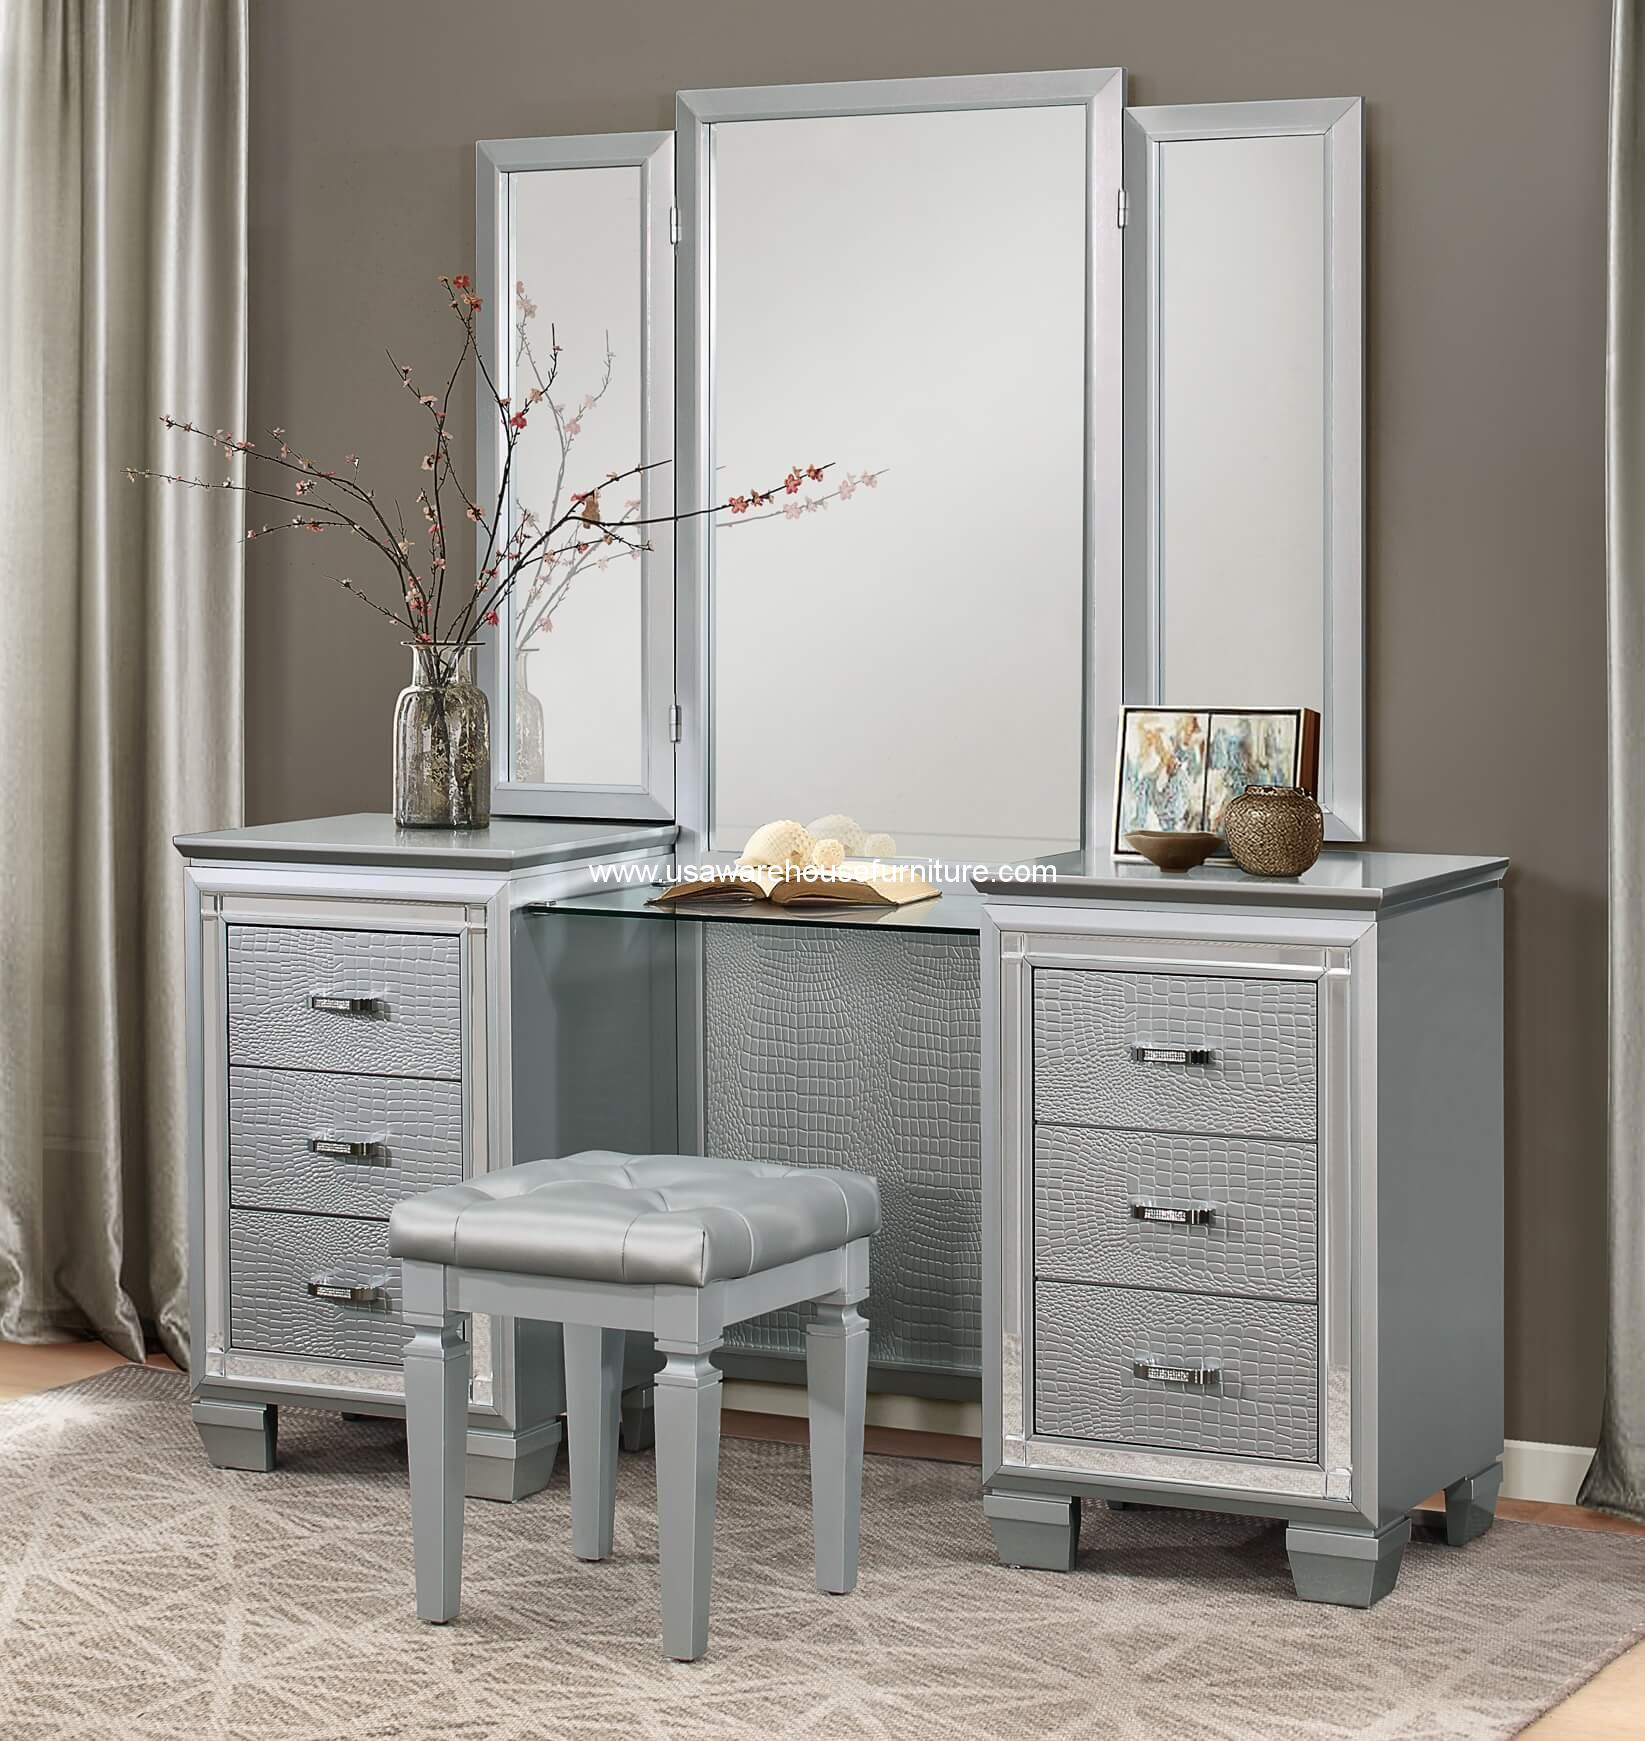 Vanity And Stool Sets Allura Vanity Set With Mirror And Stool Usa Warehouse